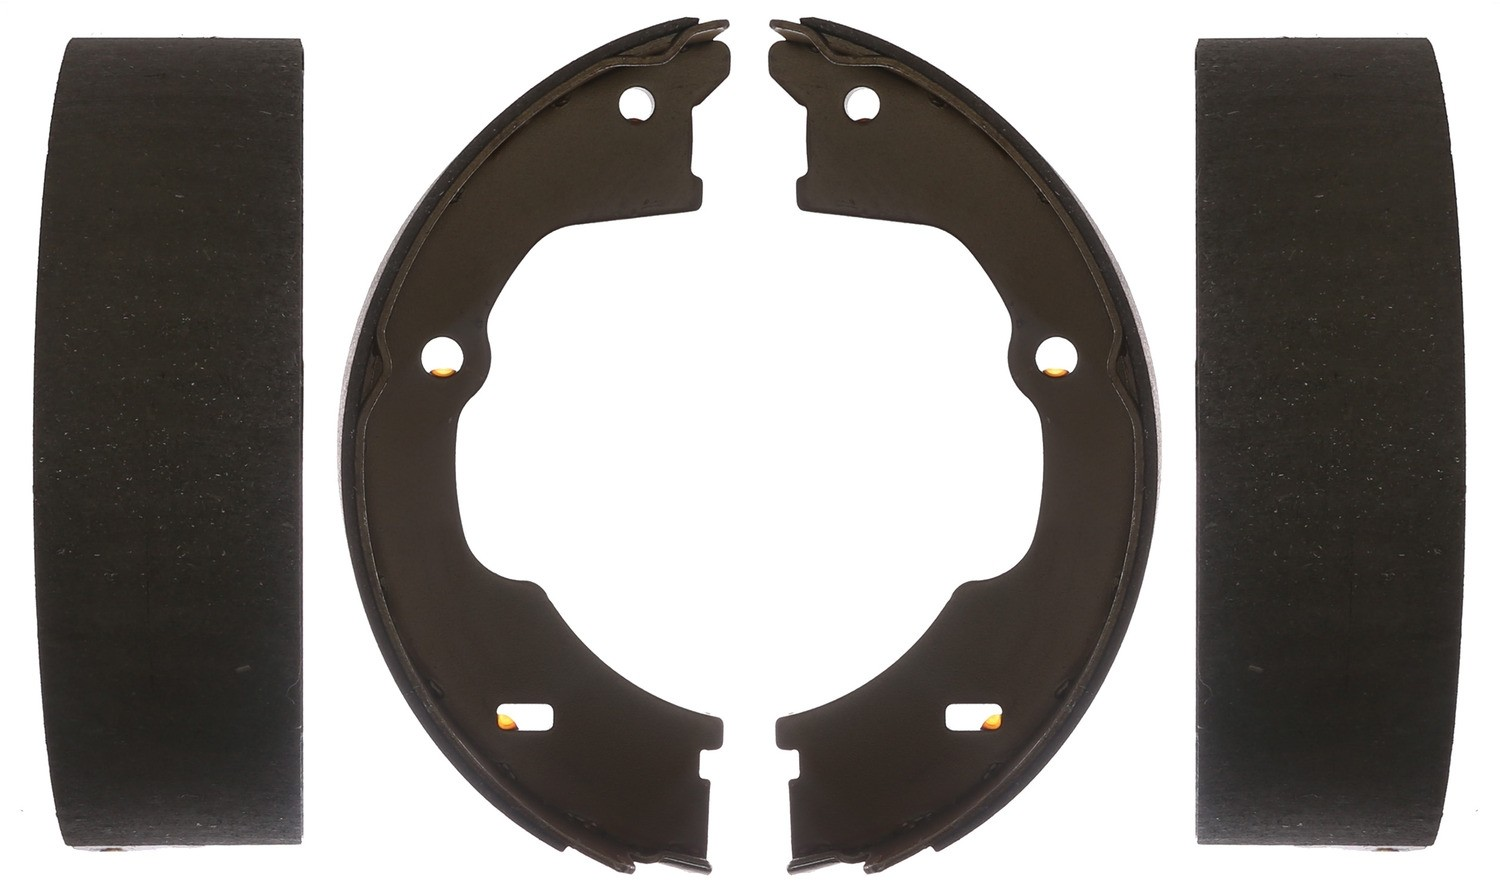 ACDELCO GOLD/PROFESSIONAL BRAKES - Bonded Parking Brake Shoe (Rear) - ADU 17847B